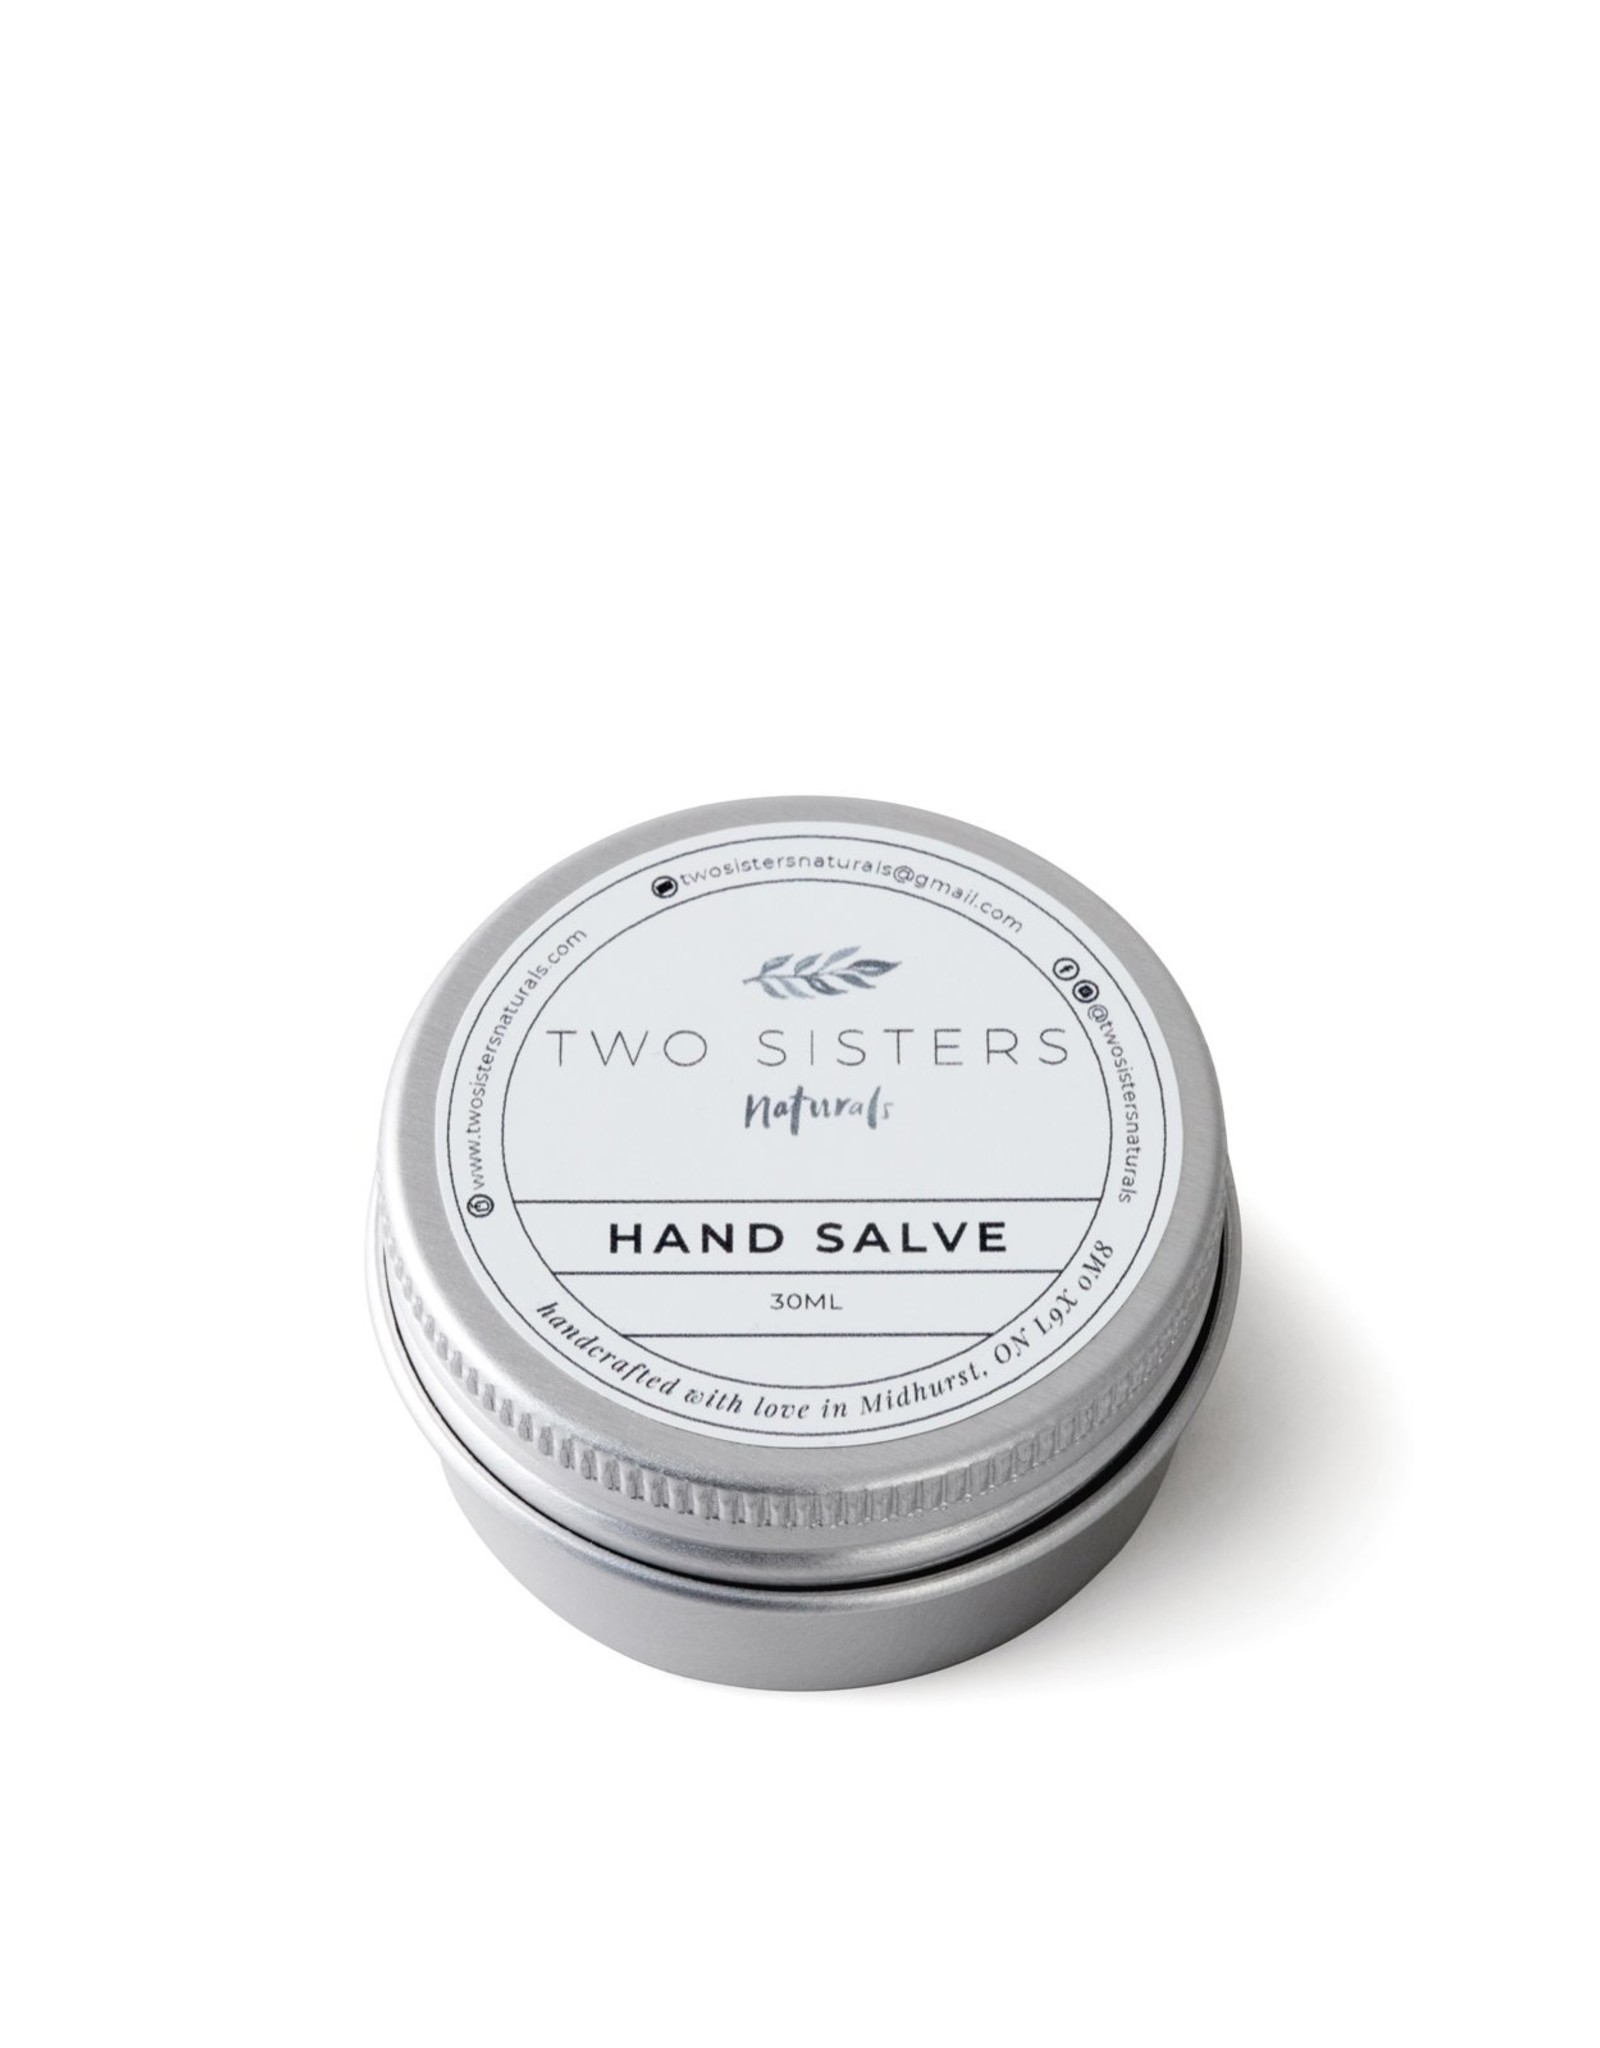 Two Sisters Naturals Hand Salve